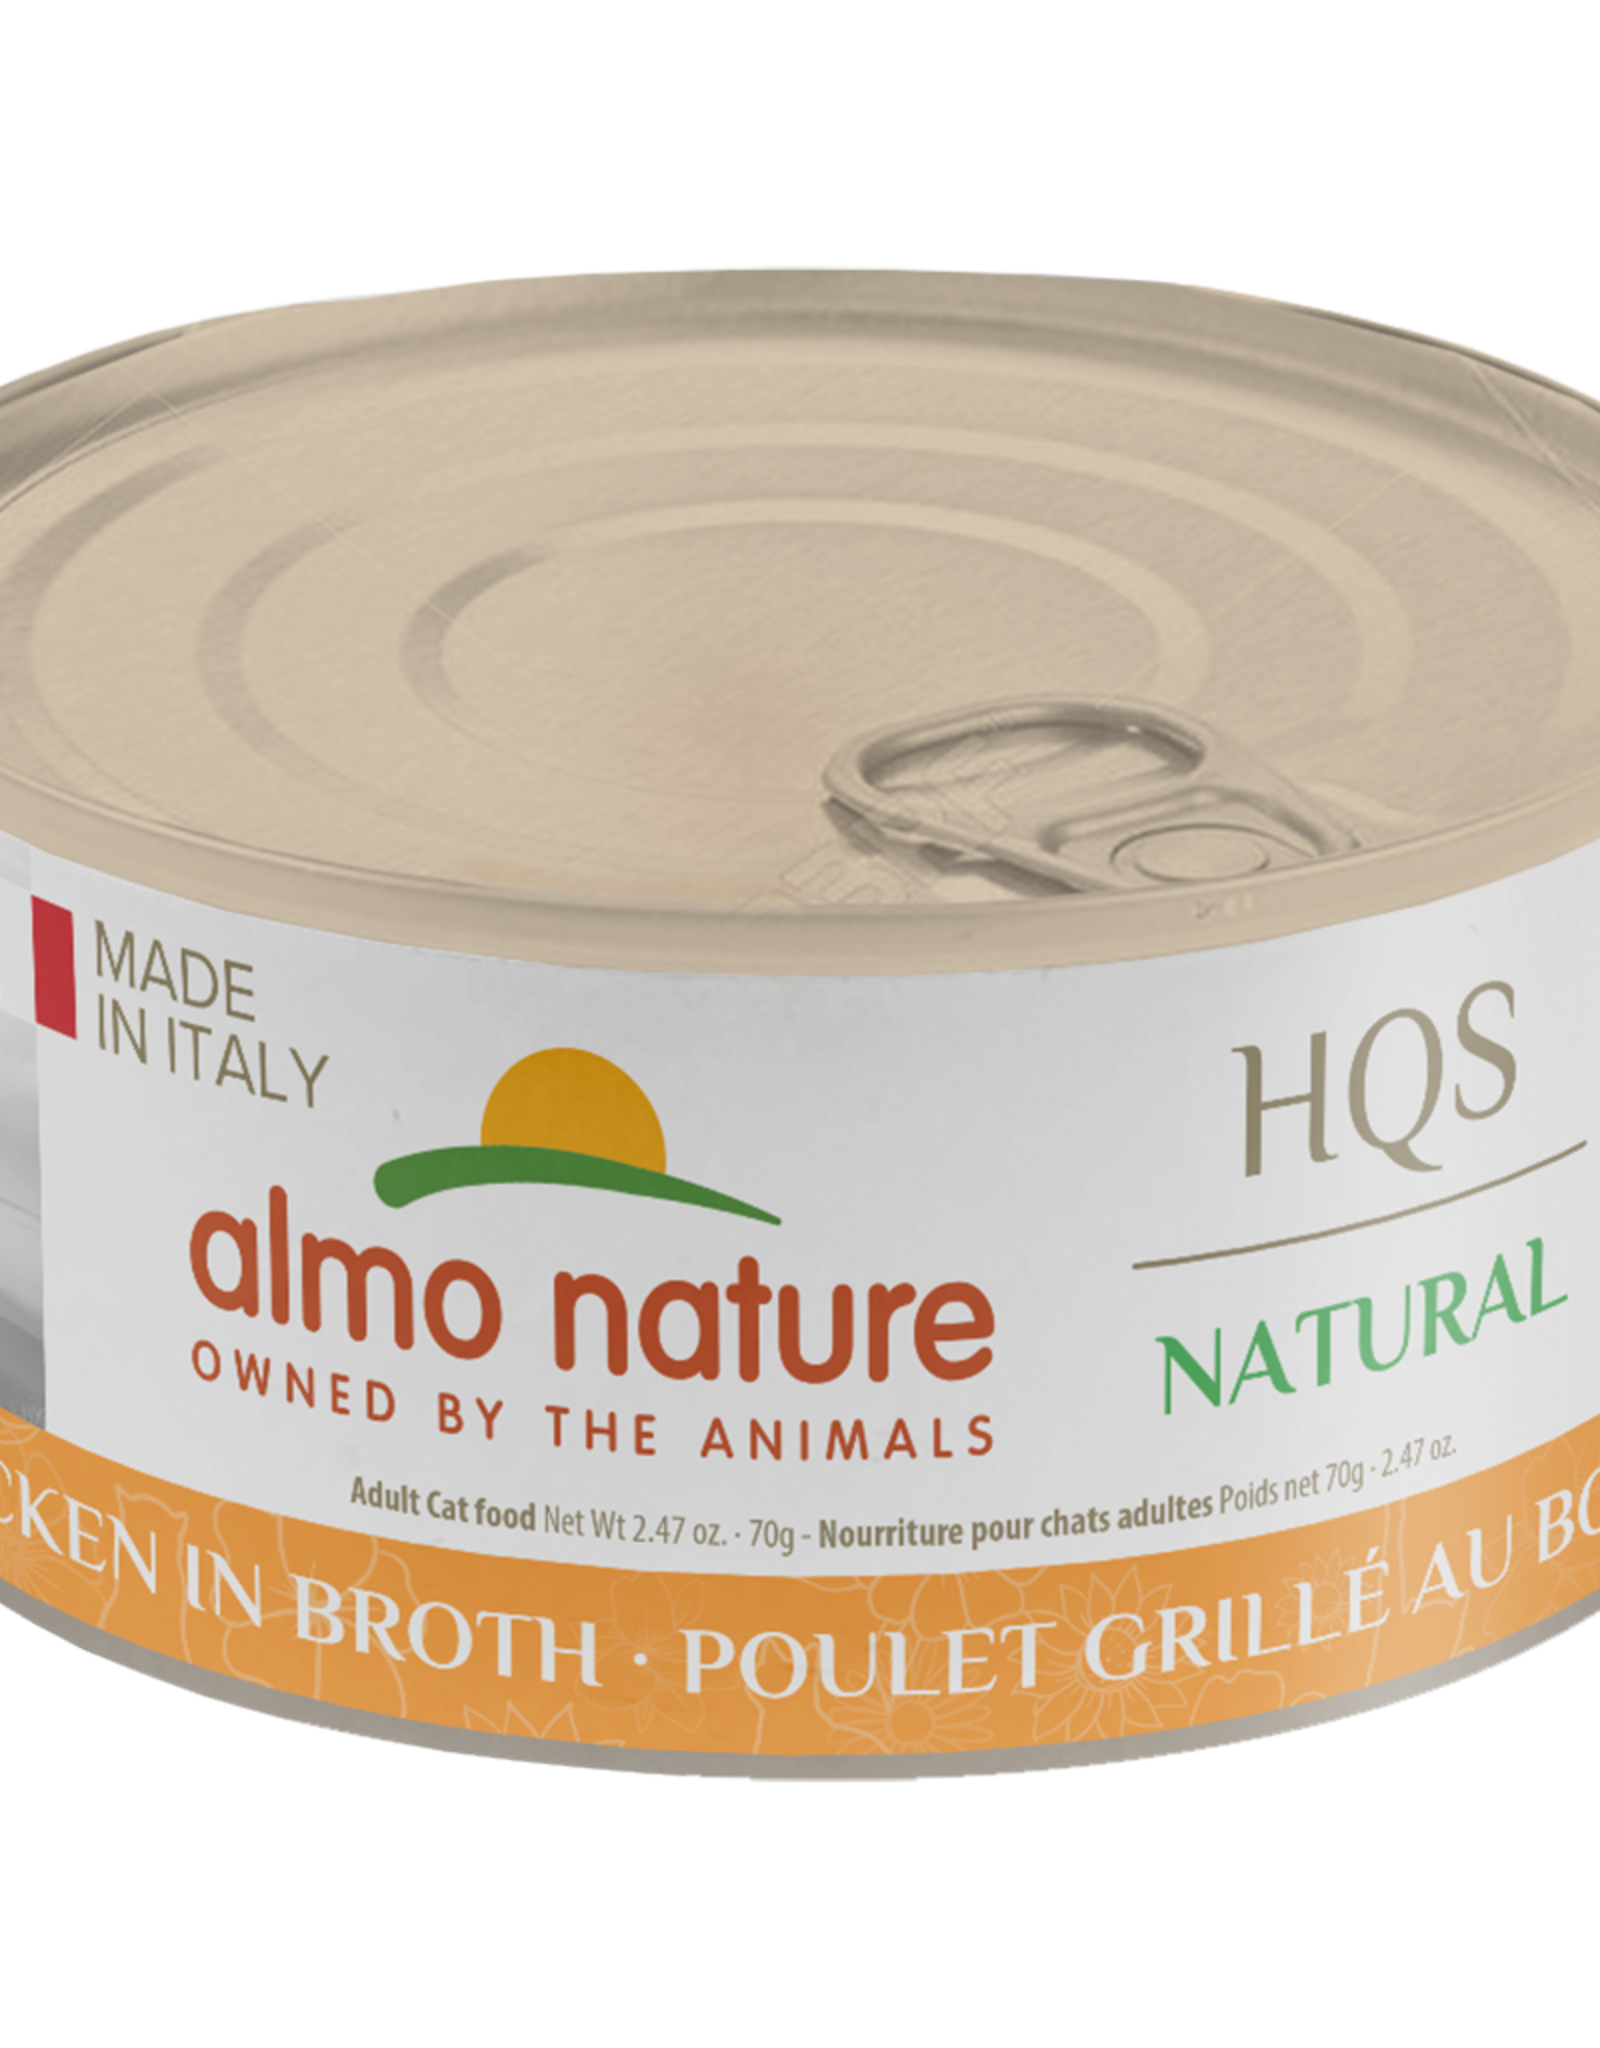 Almo Nature Made in Italy Grilled Chicken Broth 70gm